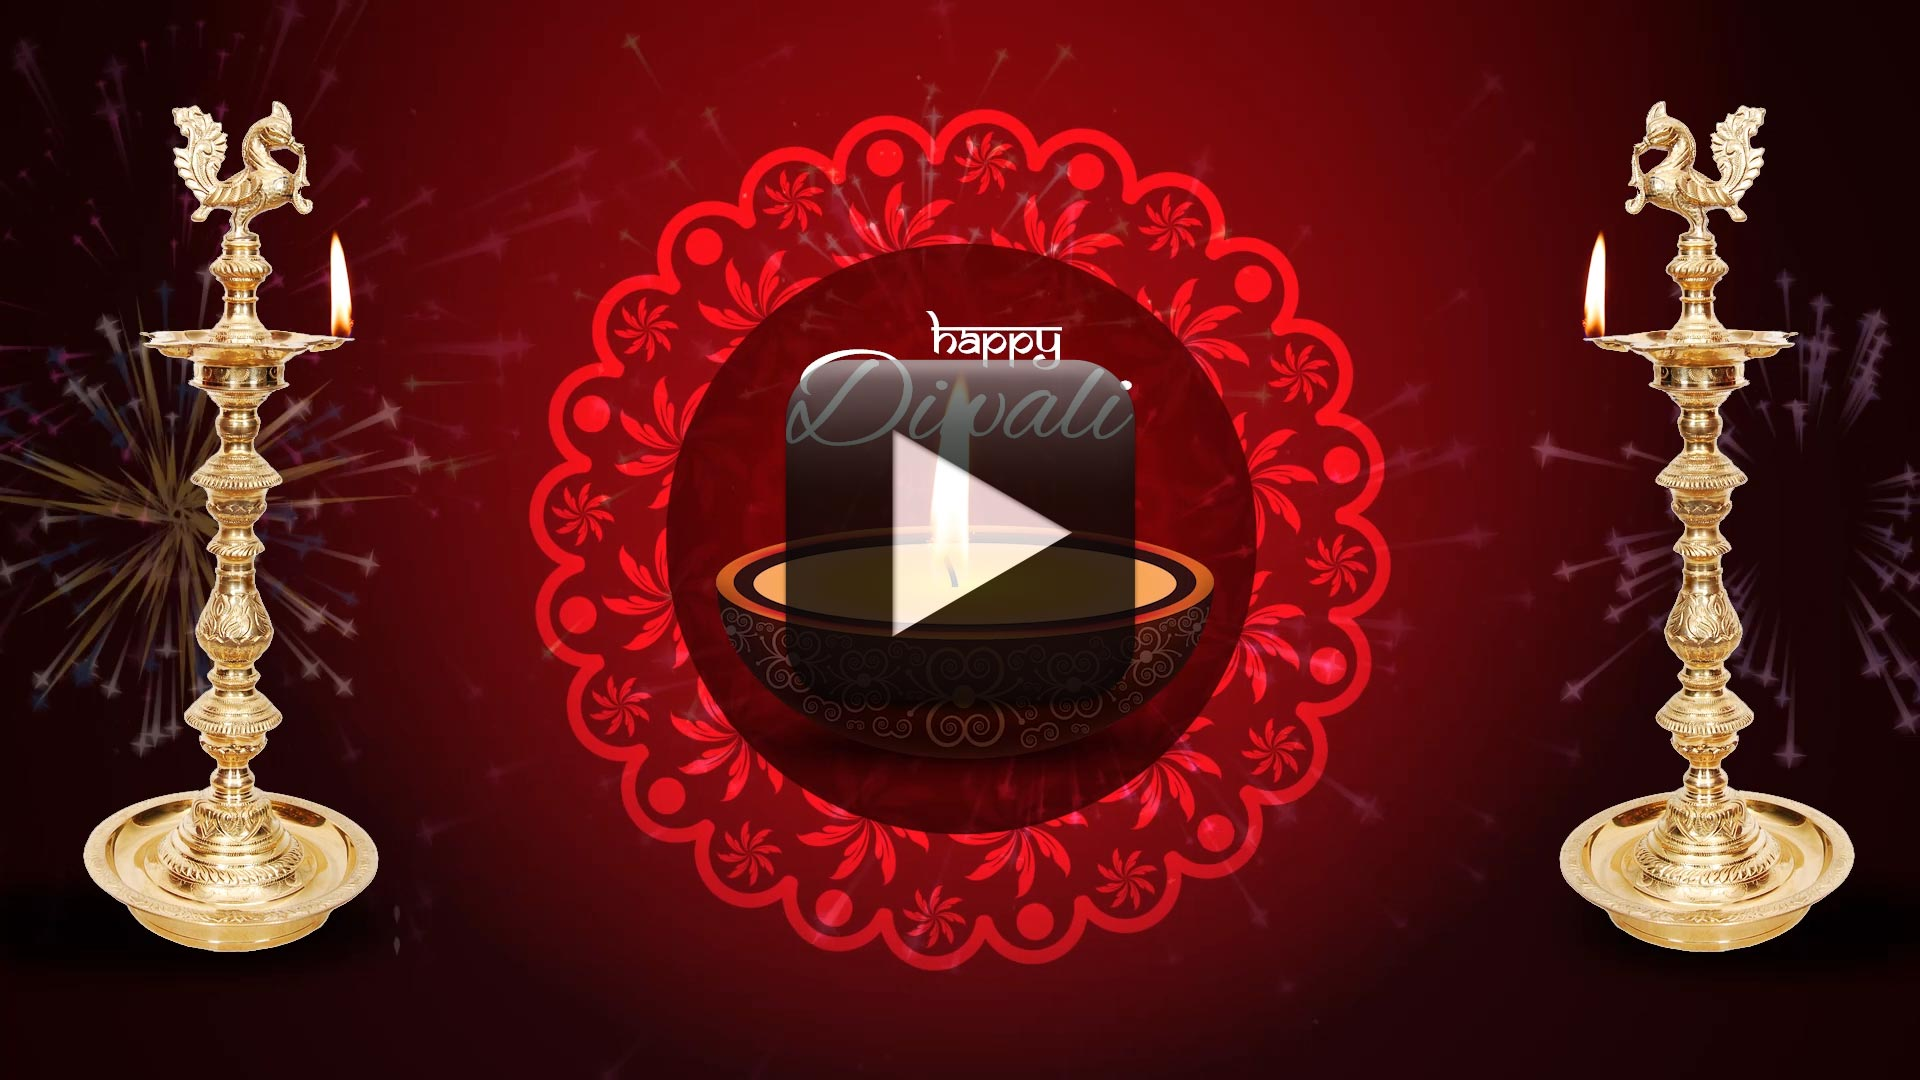 Wish you happy diwali video free download greetings animation all wish you happy diwali video free download greetings animation all design creative m4hsunfo